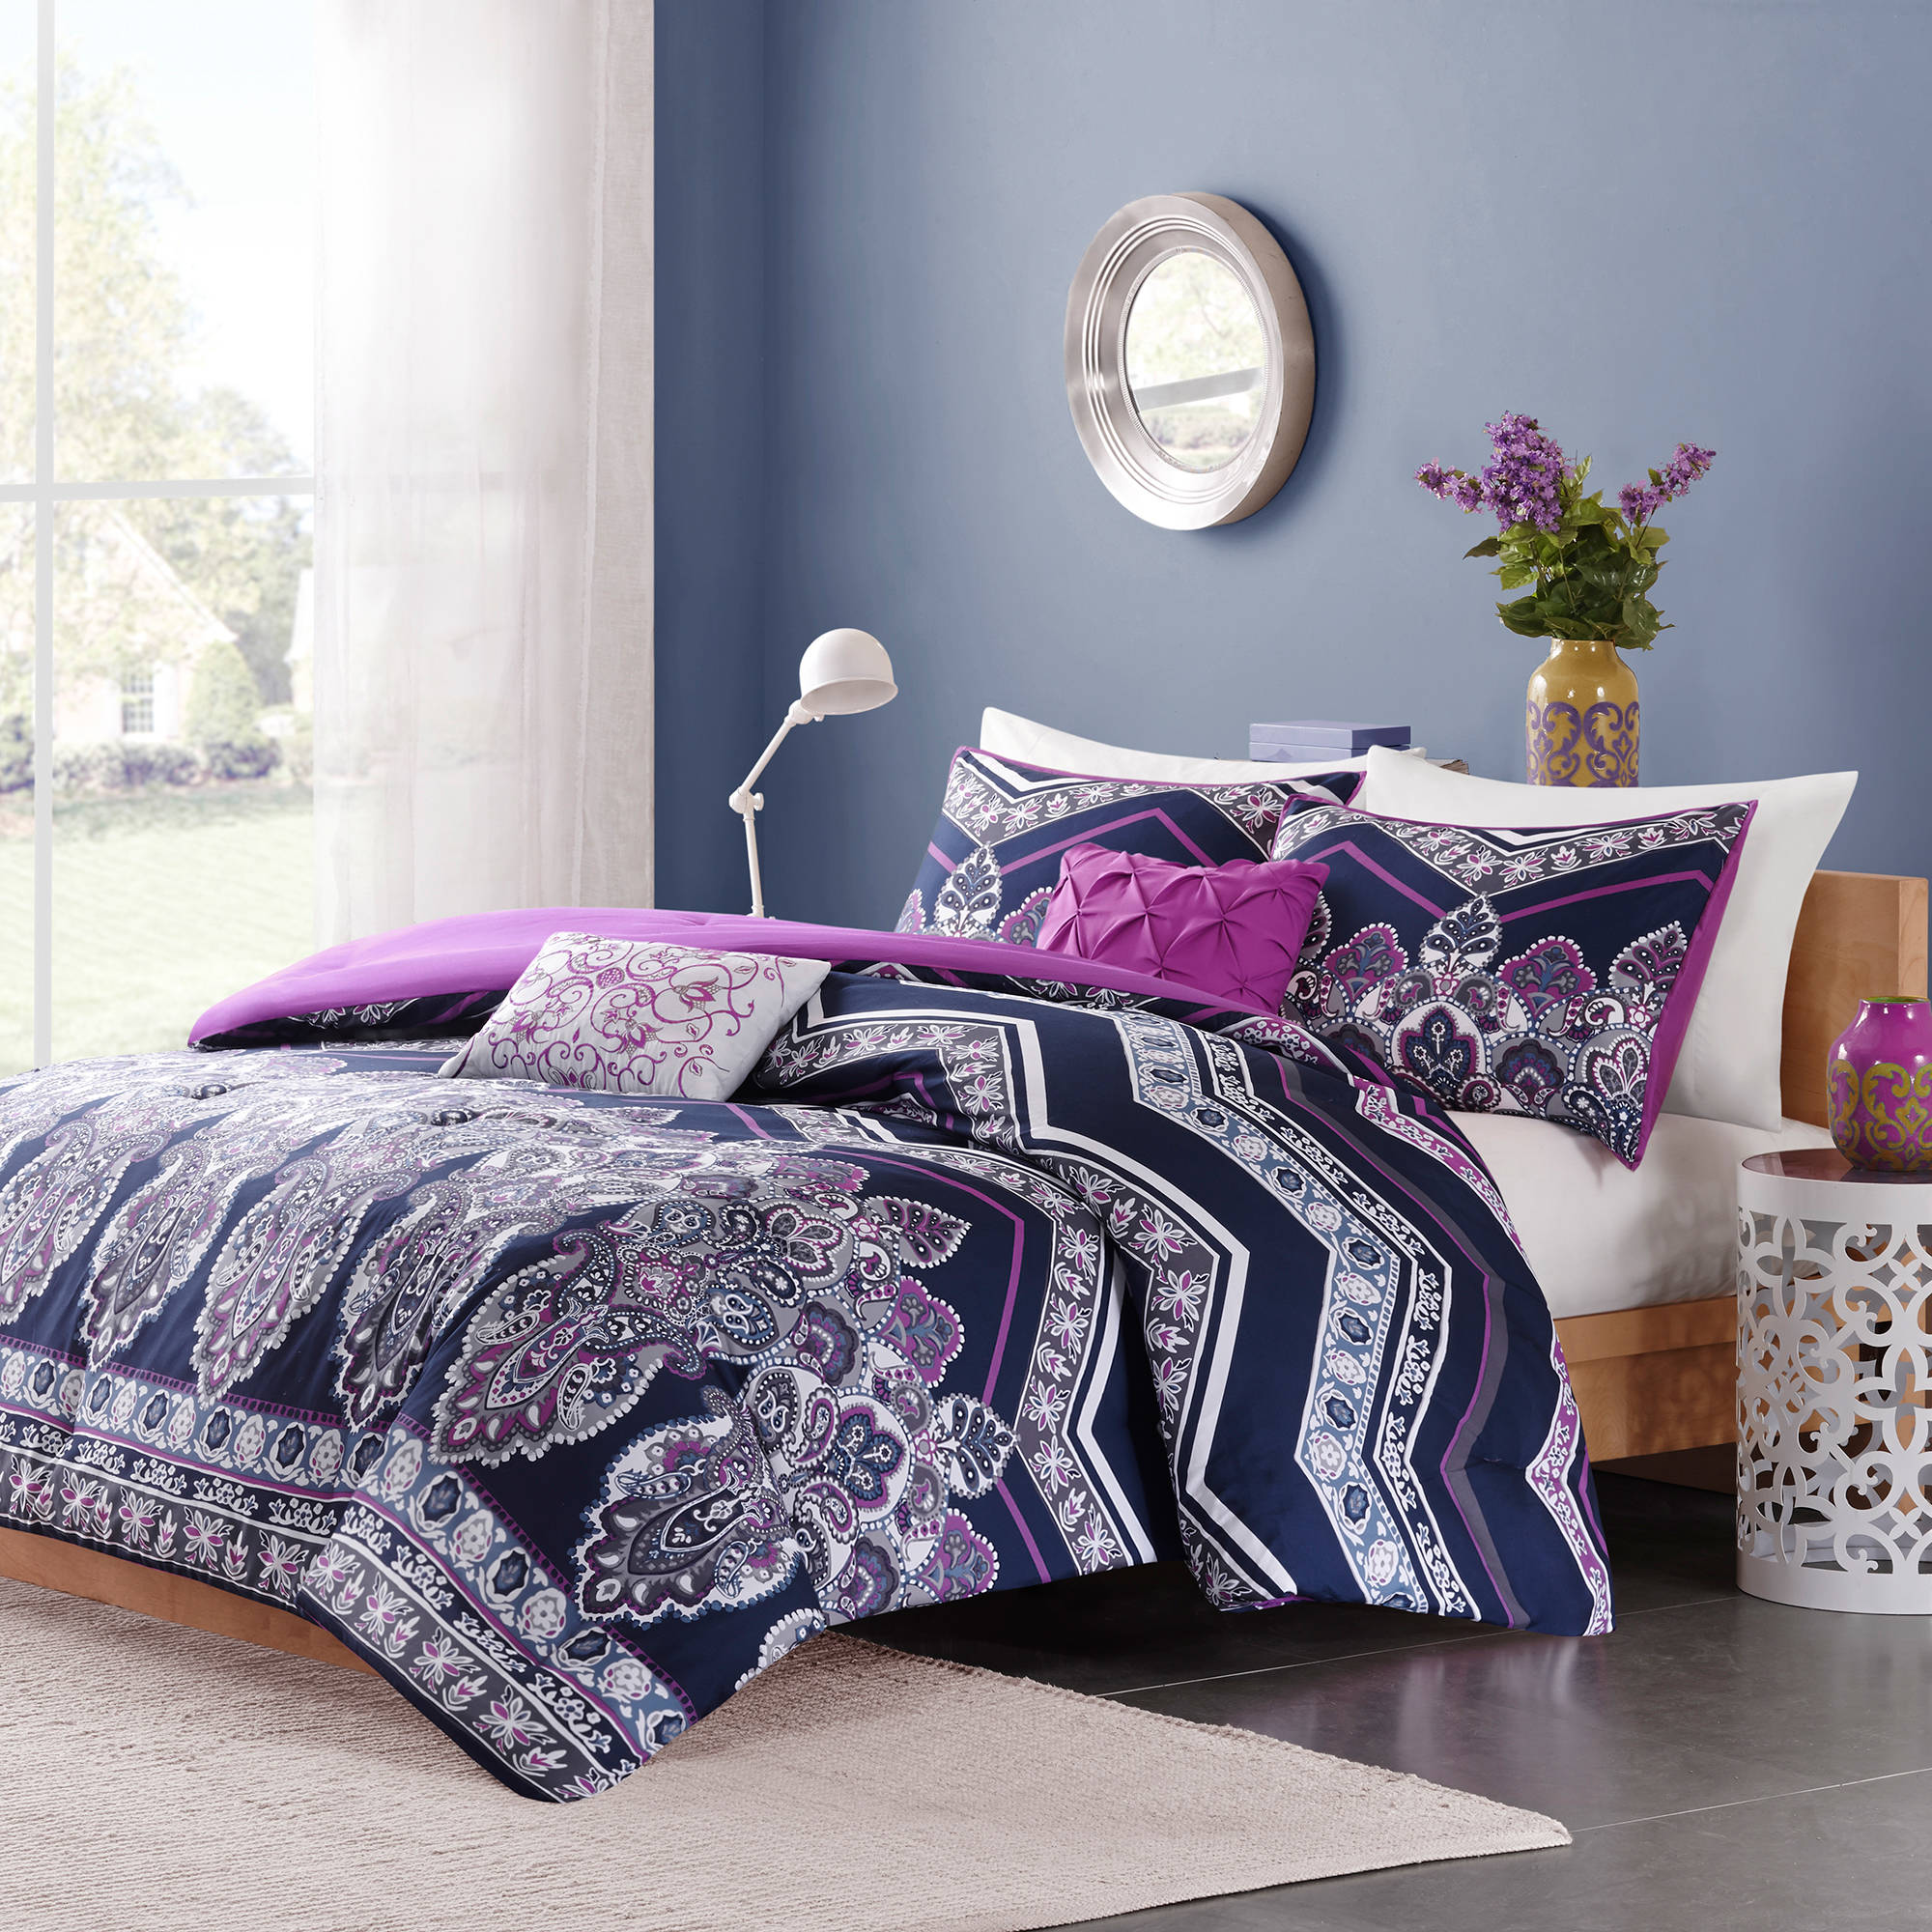 Home Essence Apartment Blakely Comforter Bedding Set